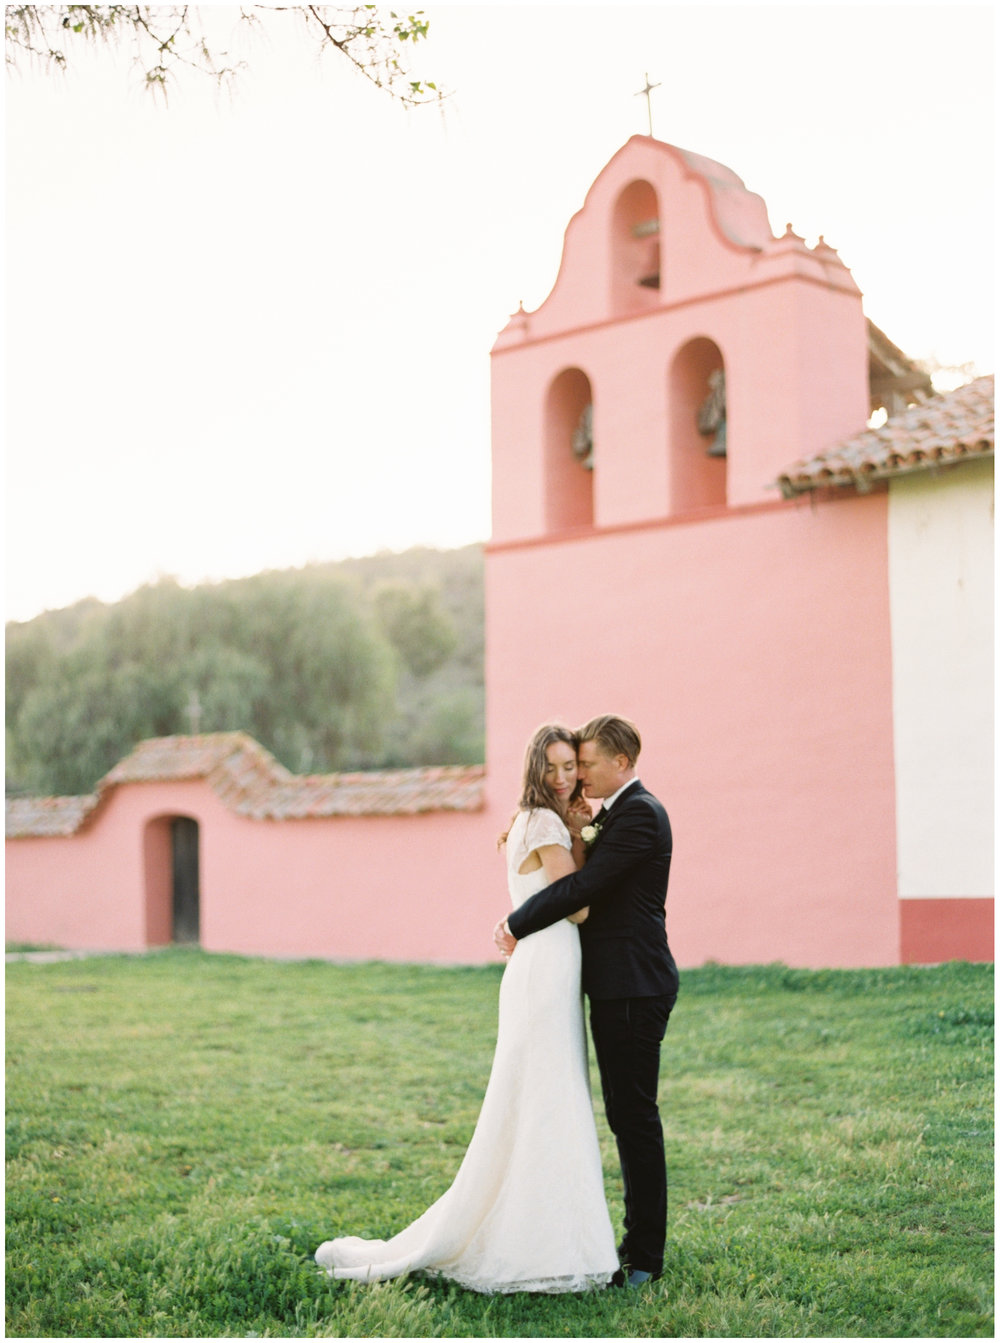 Santa_Barbara_Wedding_Photographer_Pinnel_Photography_La_Purisima_Mission-053.jpg